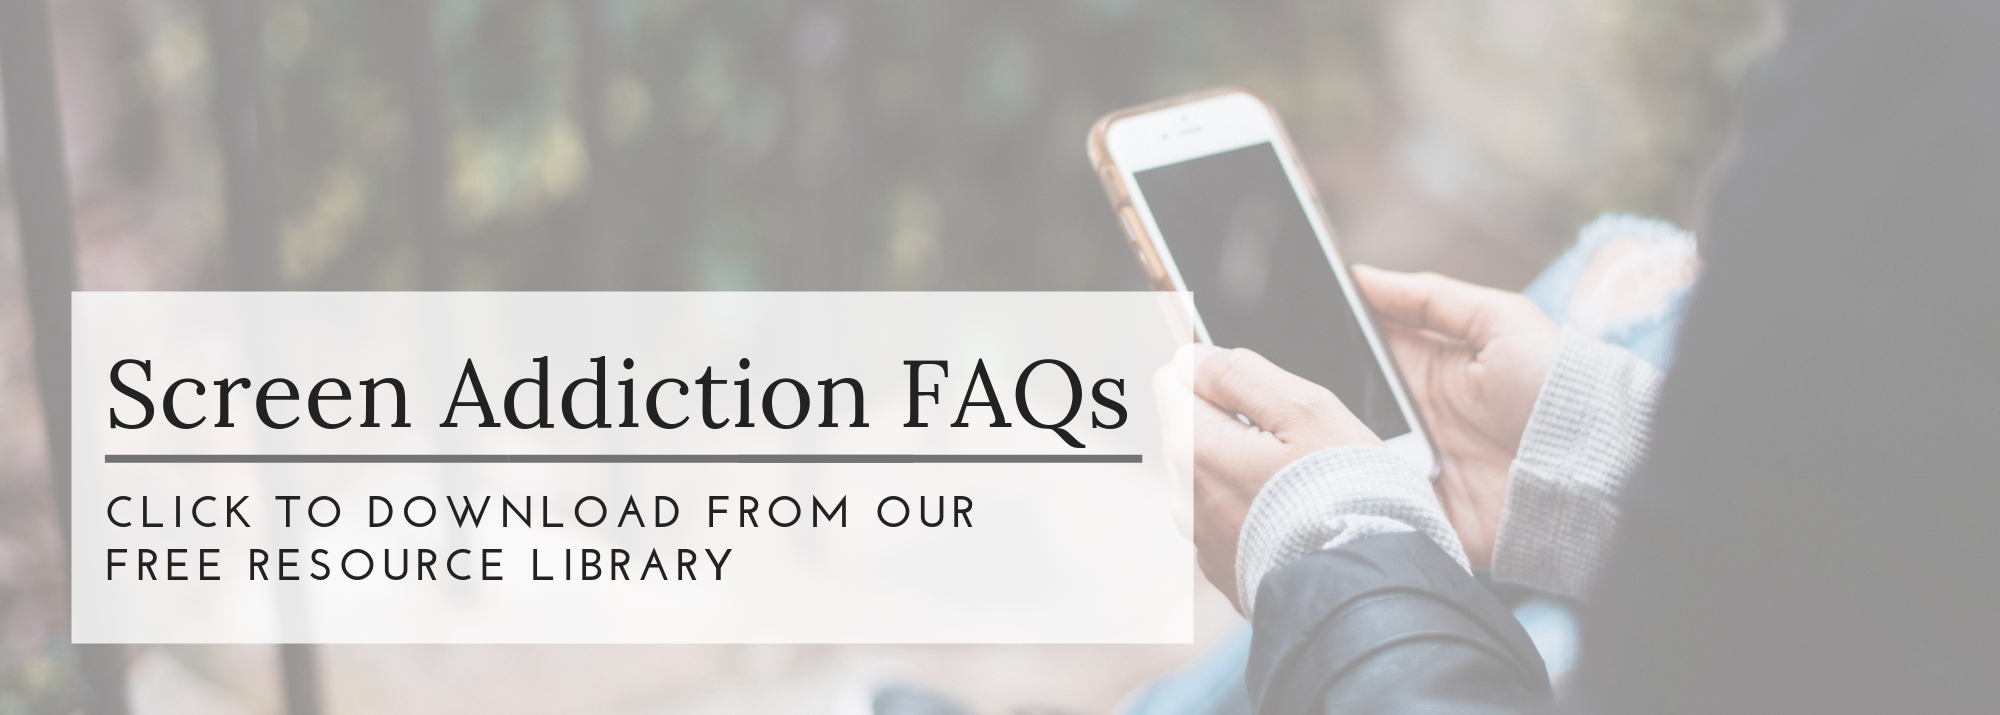 screen addiction faqs